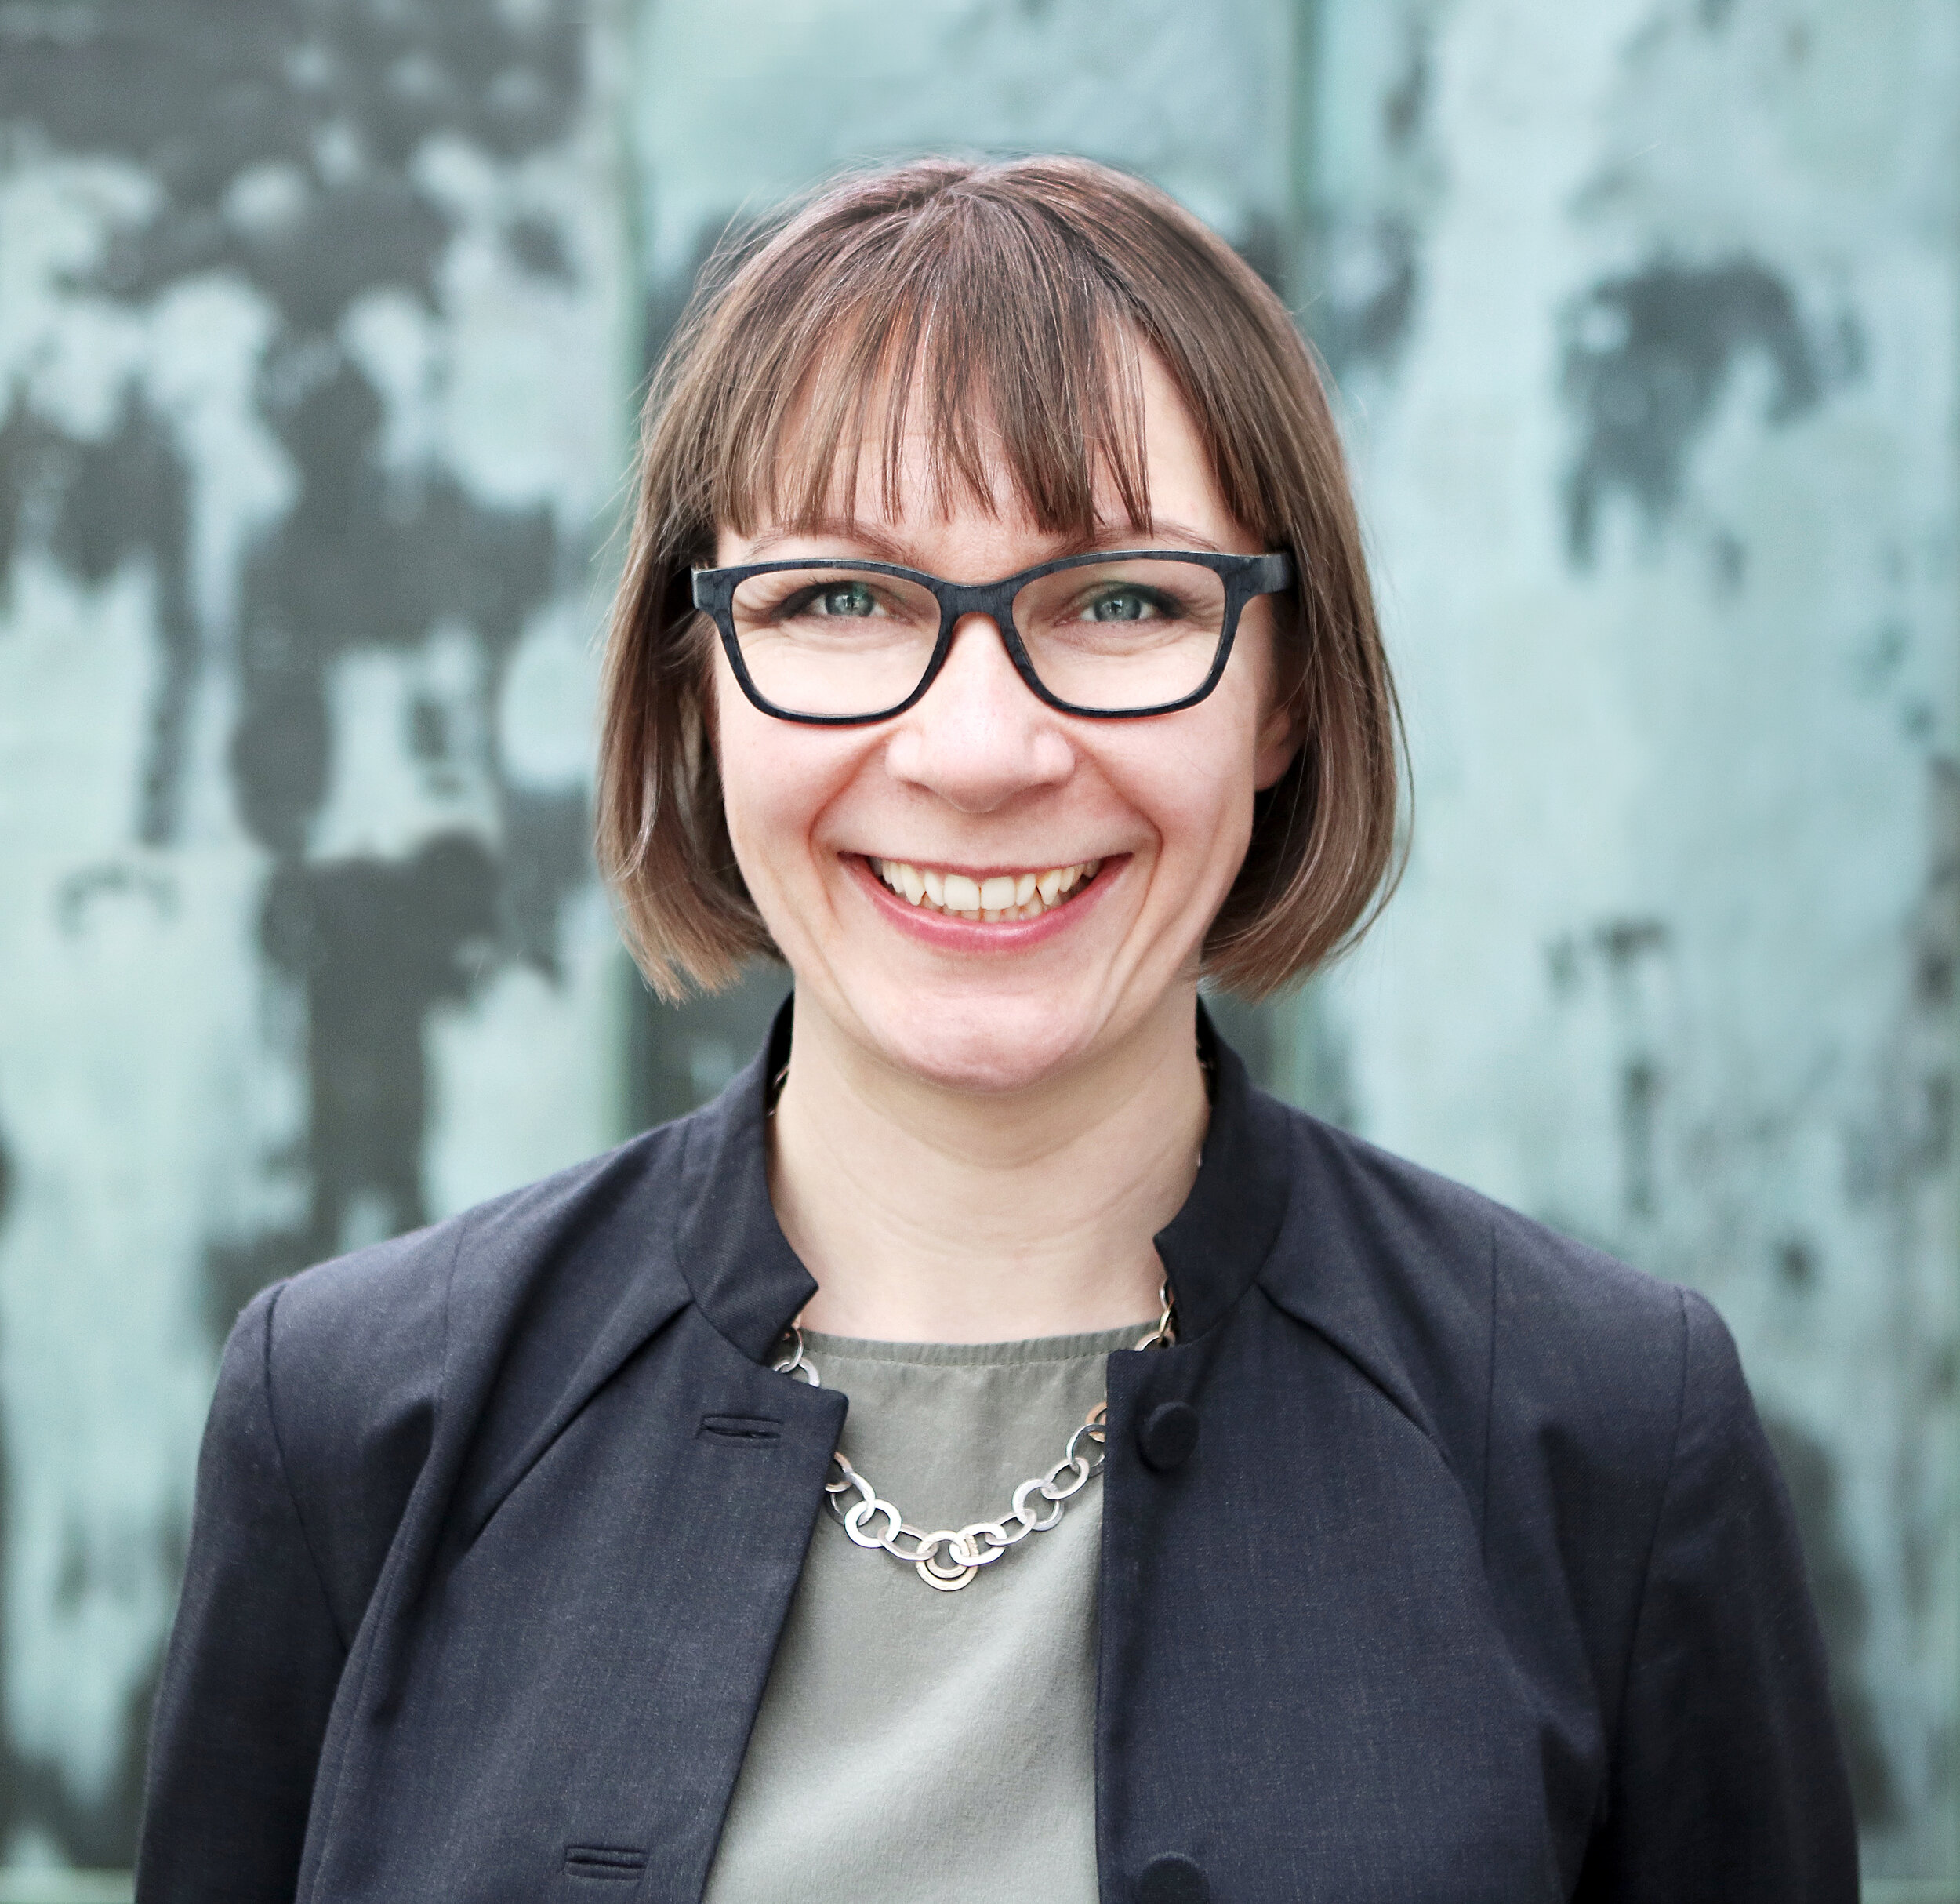 Sofie Irgens (DK)   Business Development, Product Management and Marketing globally at KK